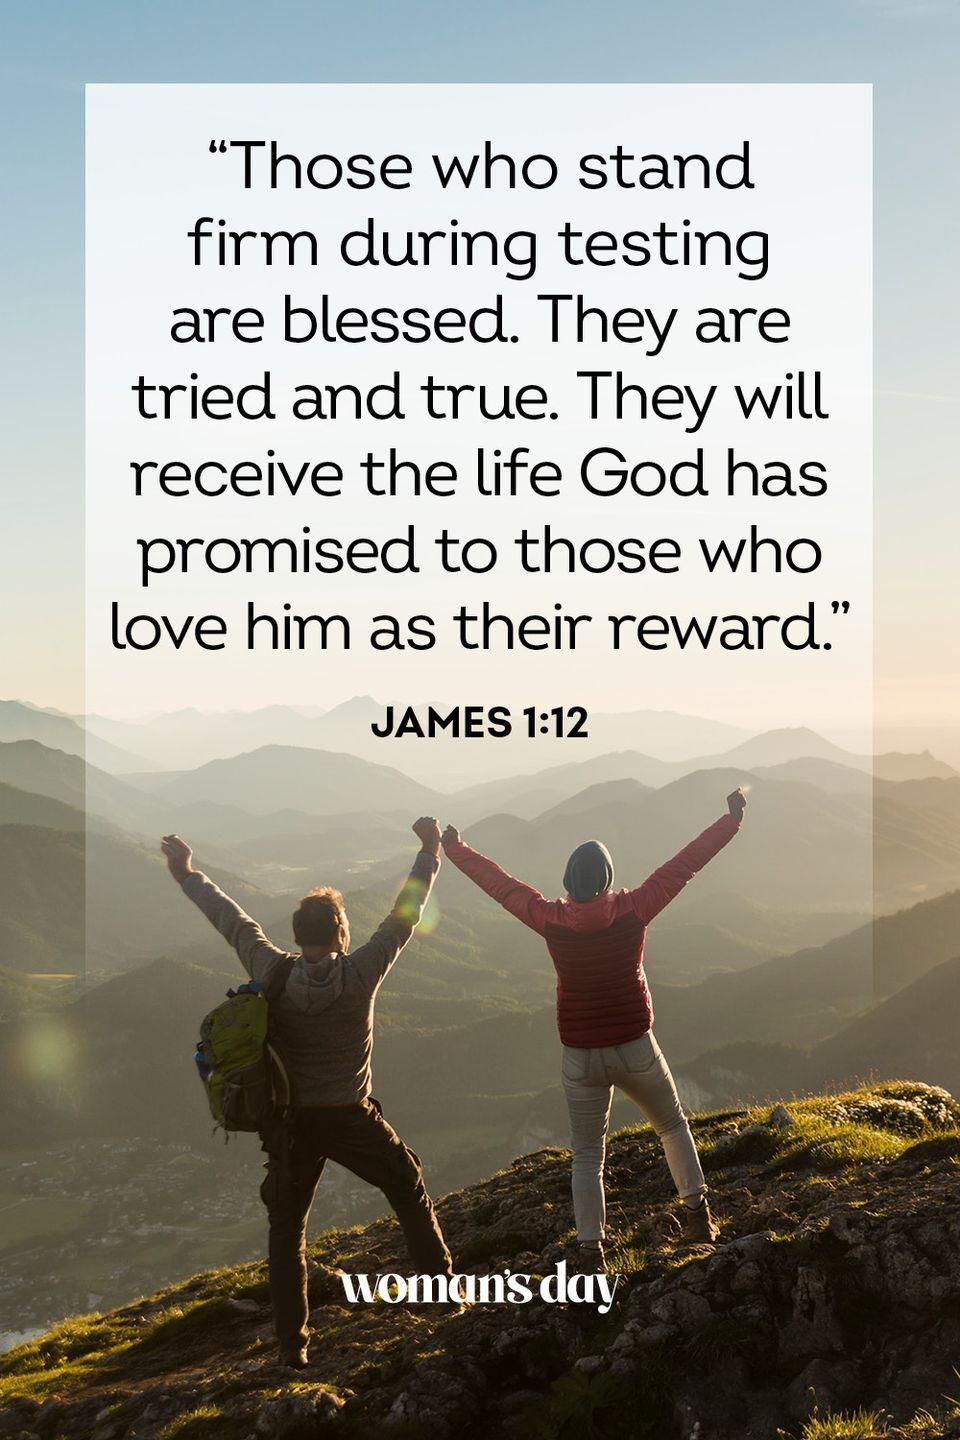 """<p>""""Those who stand firm during testing are blessed. They are tried and true. They will receive the life God has promised to those who love him as their reward."""" — James 1:12</p><p><strong>The Good News:</strong> In life, we will face hardships. If we can make it to the other side of those struggles, God will be right there waiting for us — and in fact guiding us along every step of the way.</p>"""